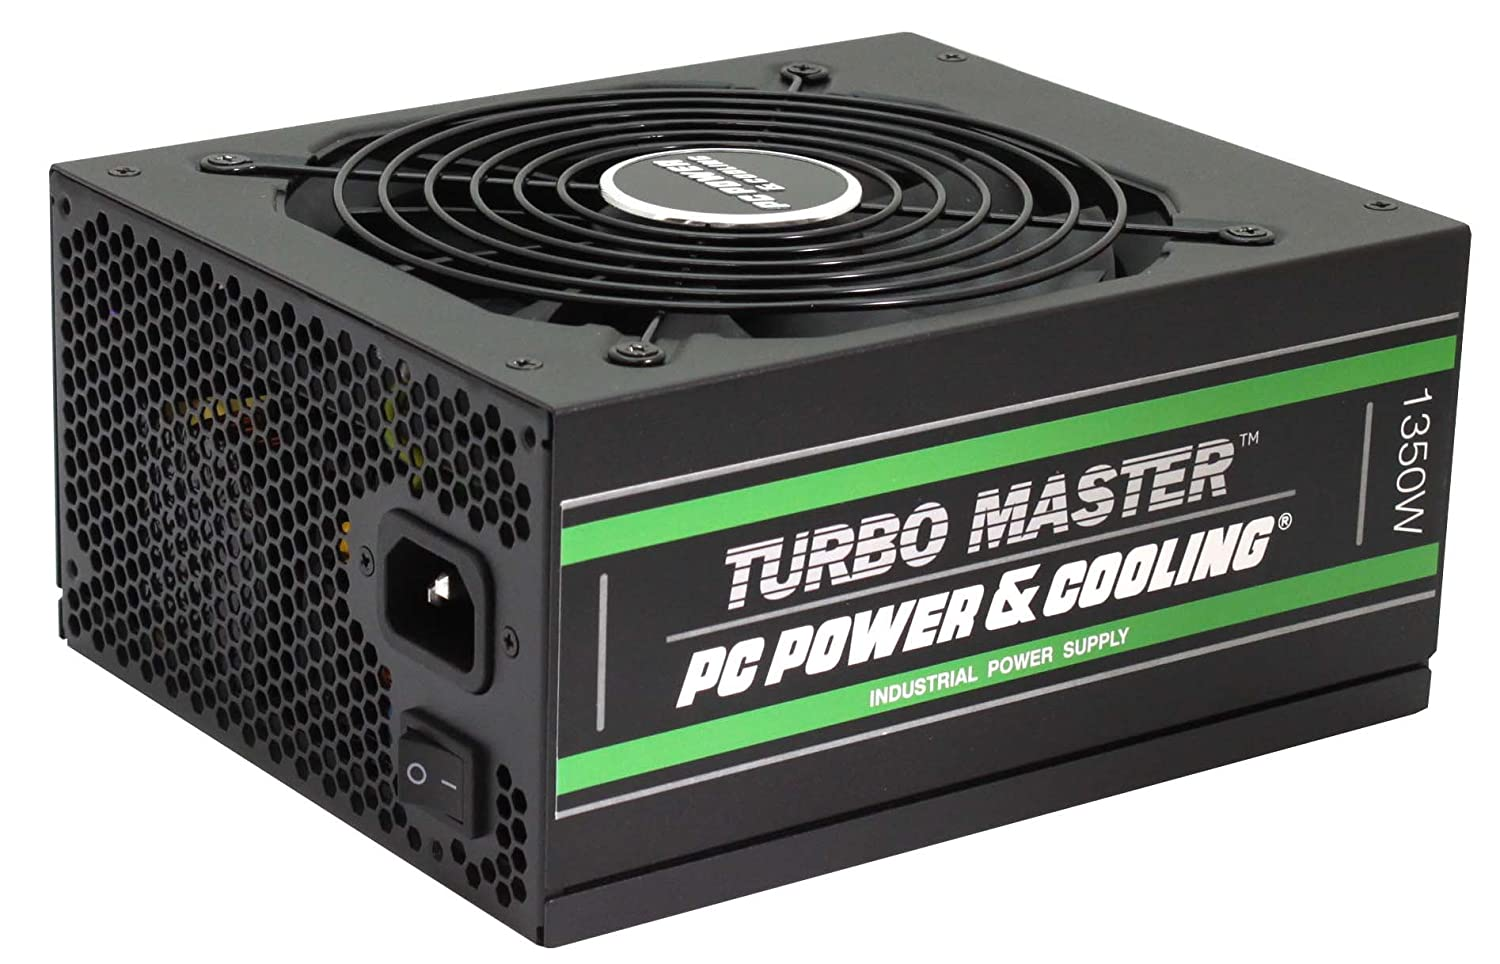 Amazon.com: PC Power & Cooling Turbo Master Series 1350 Watt, 80+ Gold, Fully-Modular, Active PFC, Quiet Industrial Grade, ATX PC Power Supply, ...